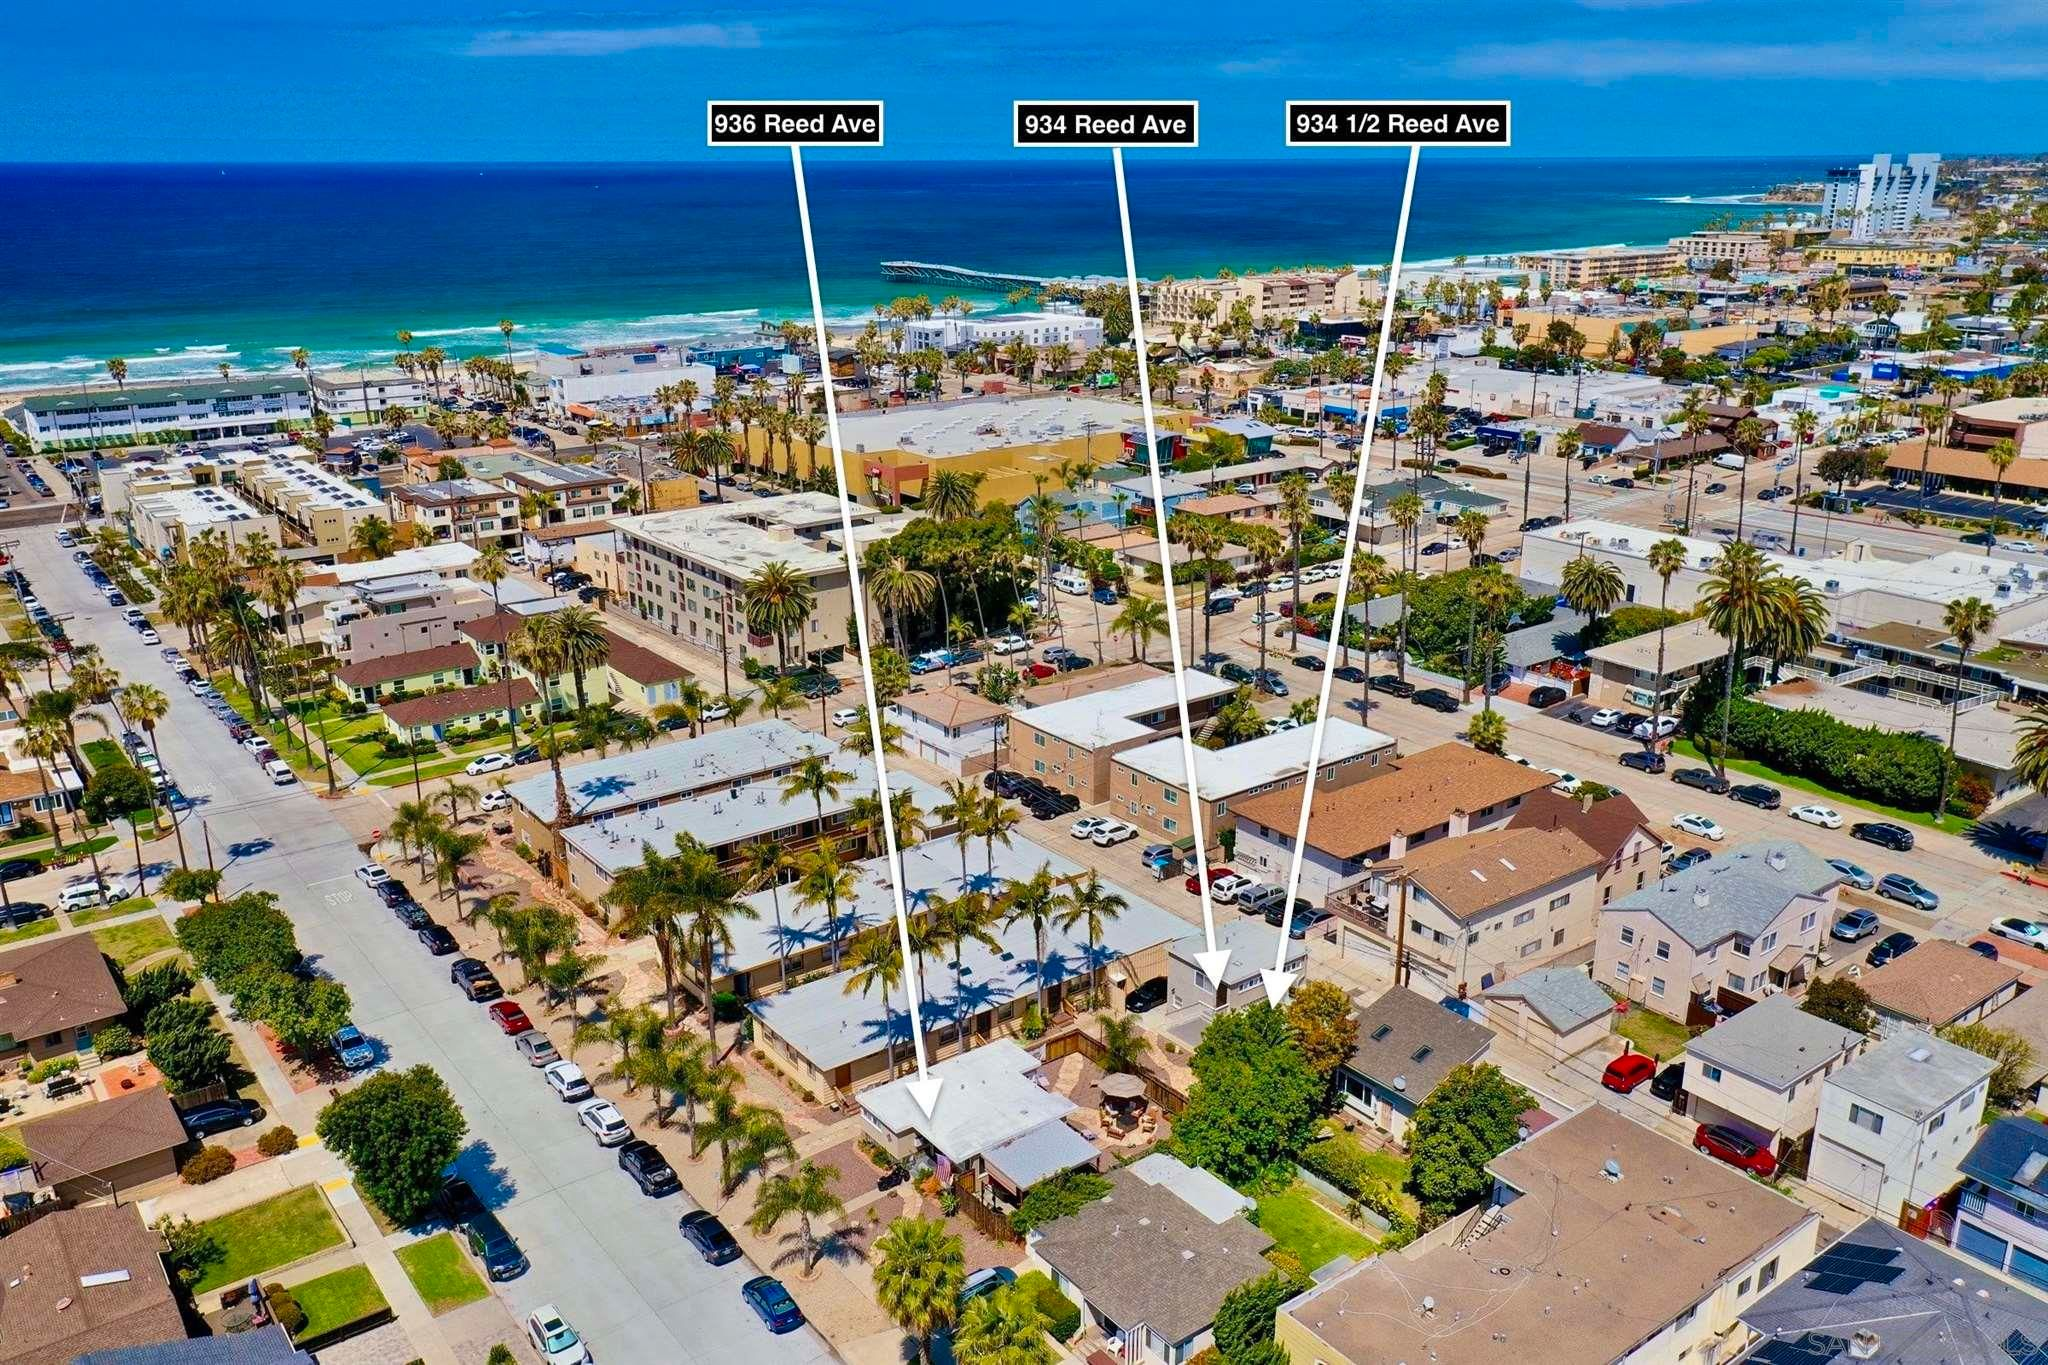 Main Photo: PACIFIC BEACH Property for sale: 934-36 Reed Ave in San Diego